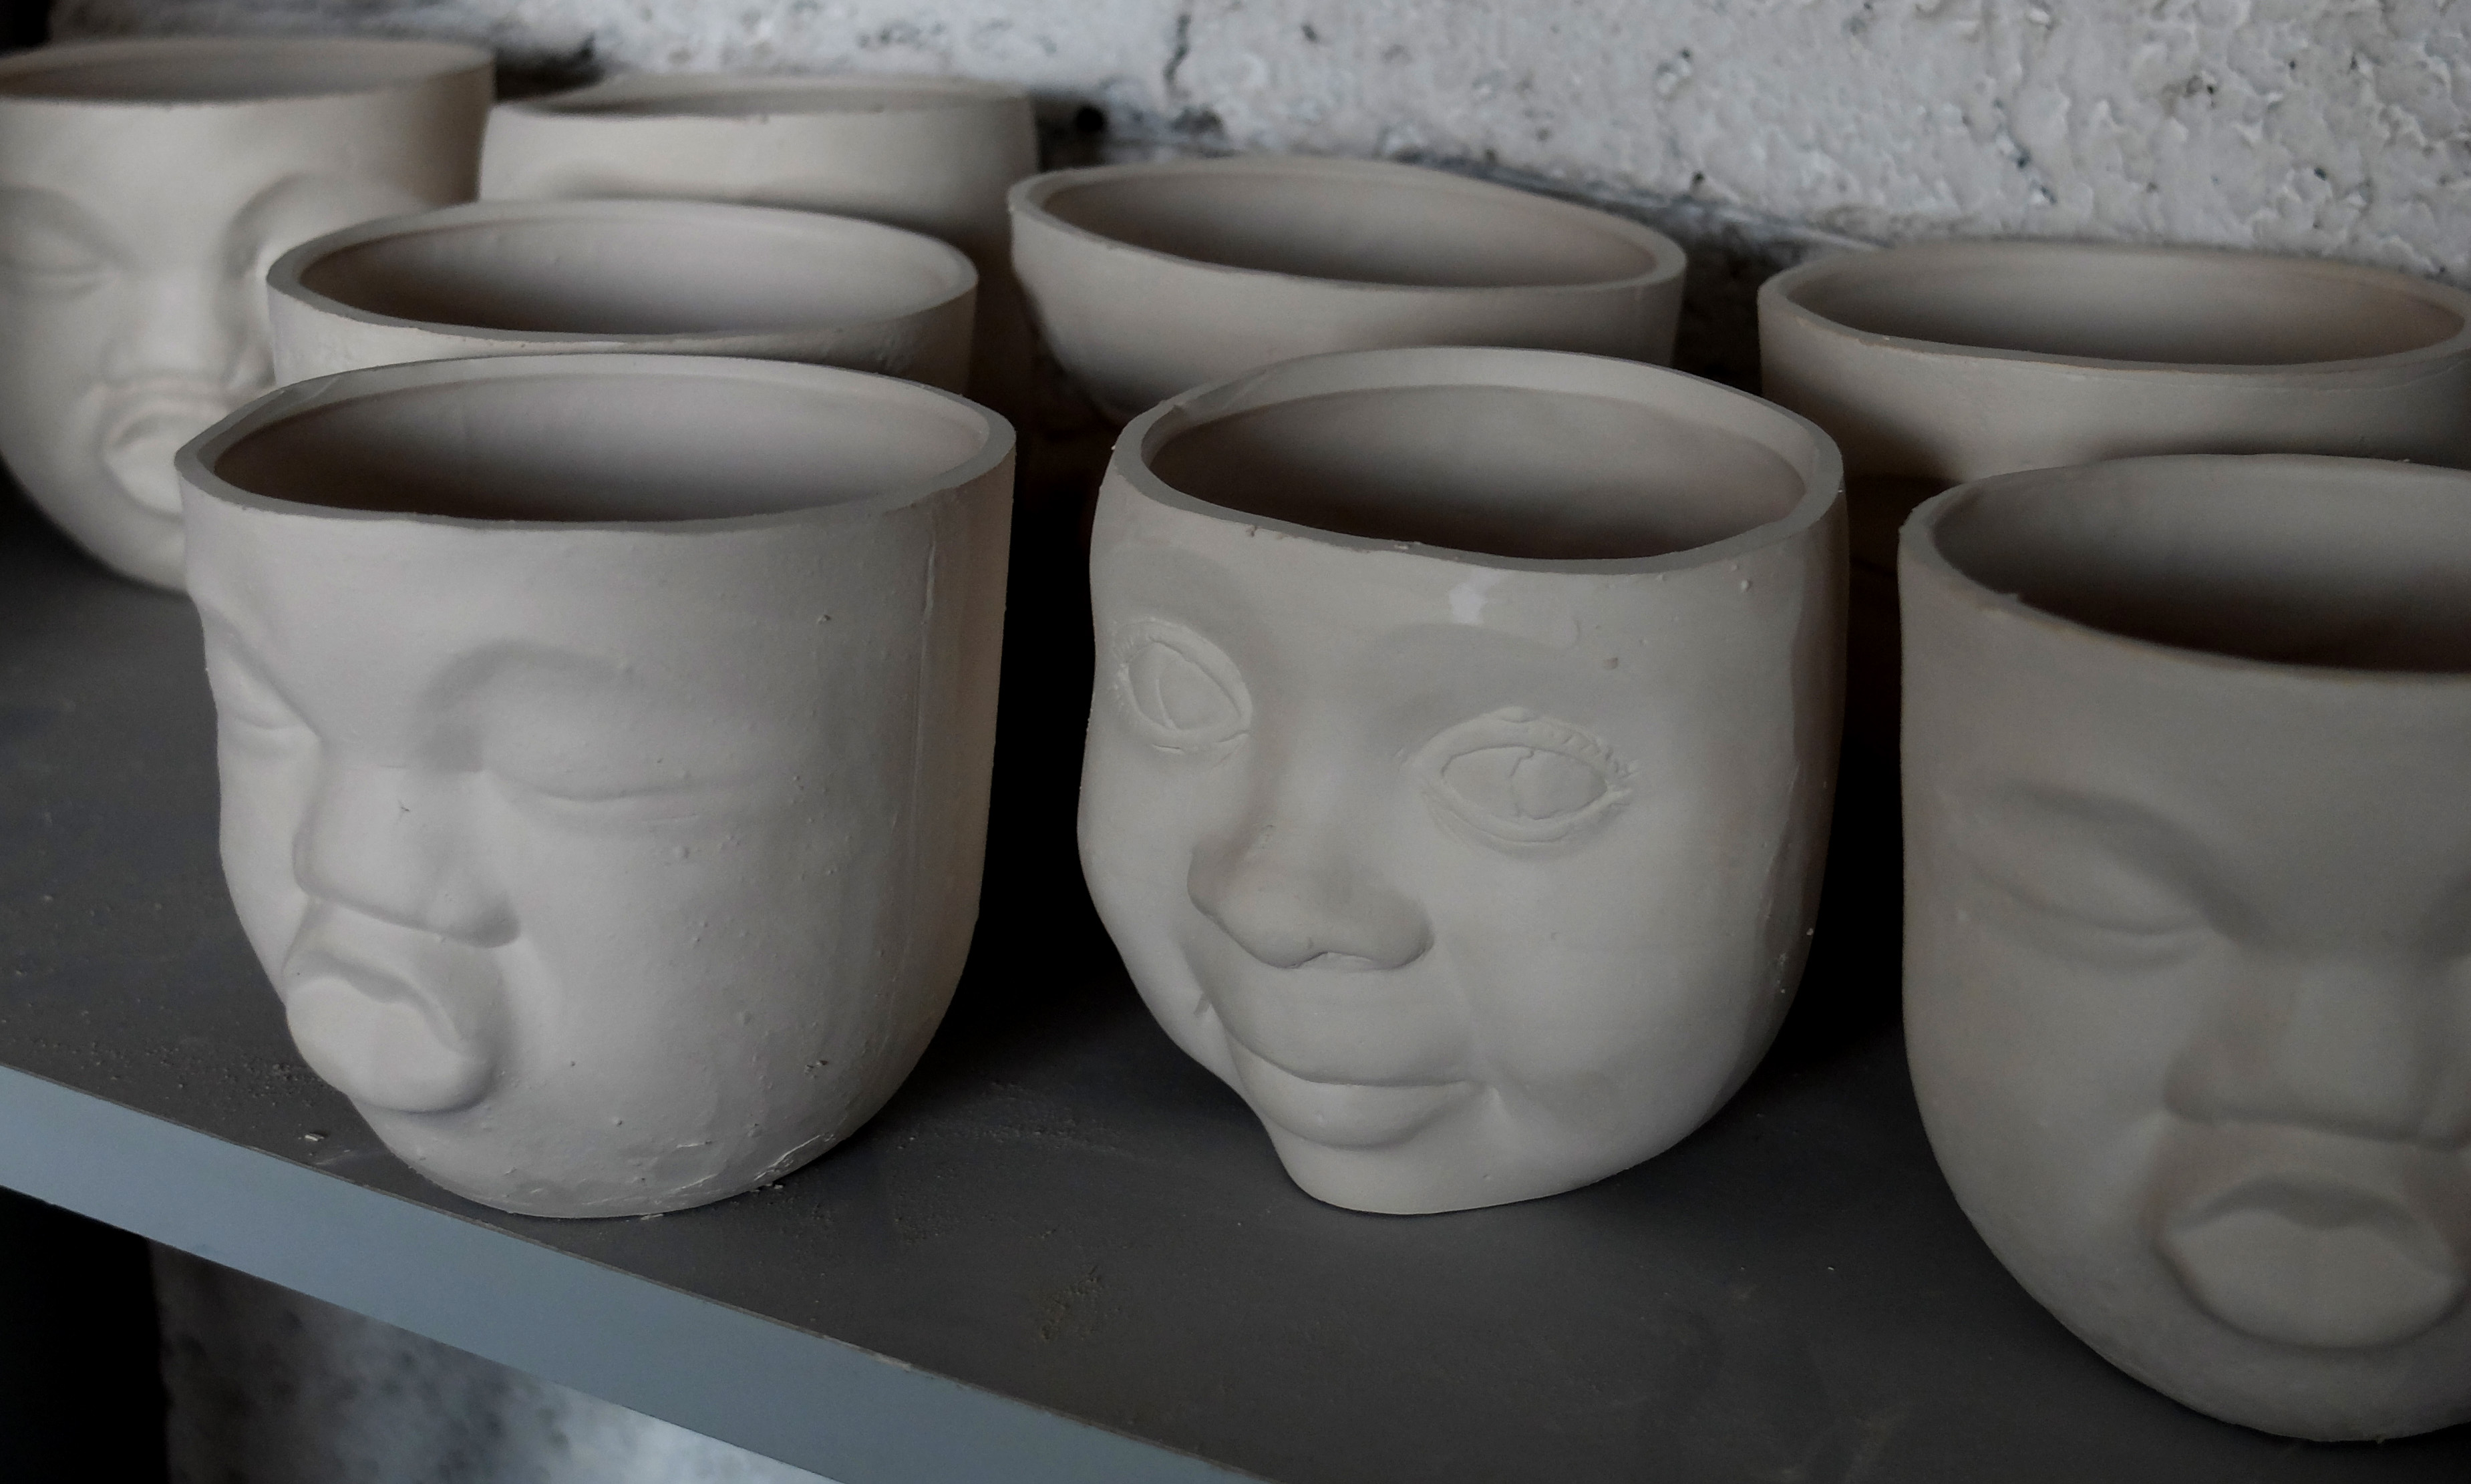 Faces before firing